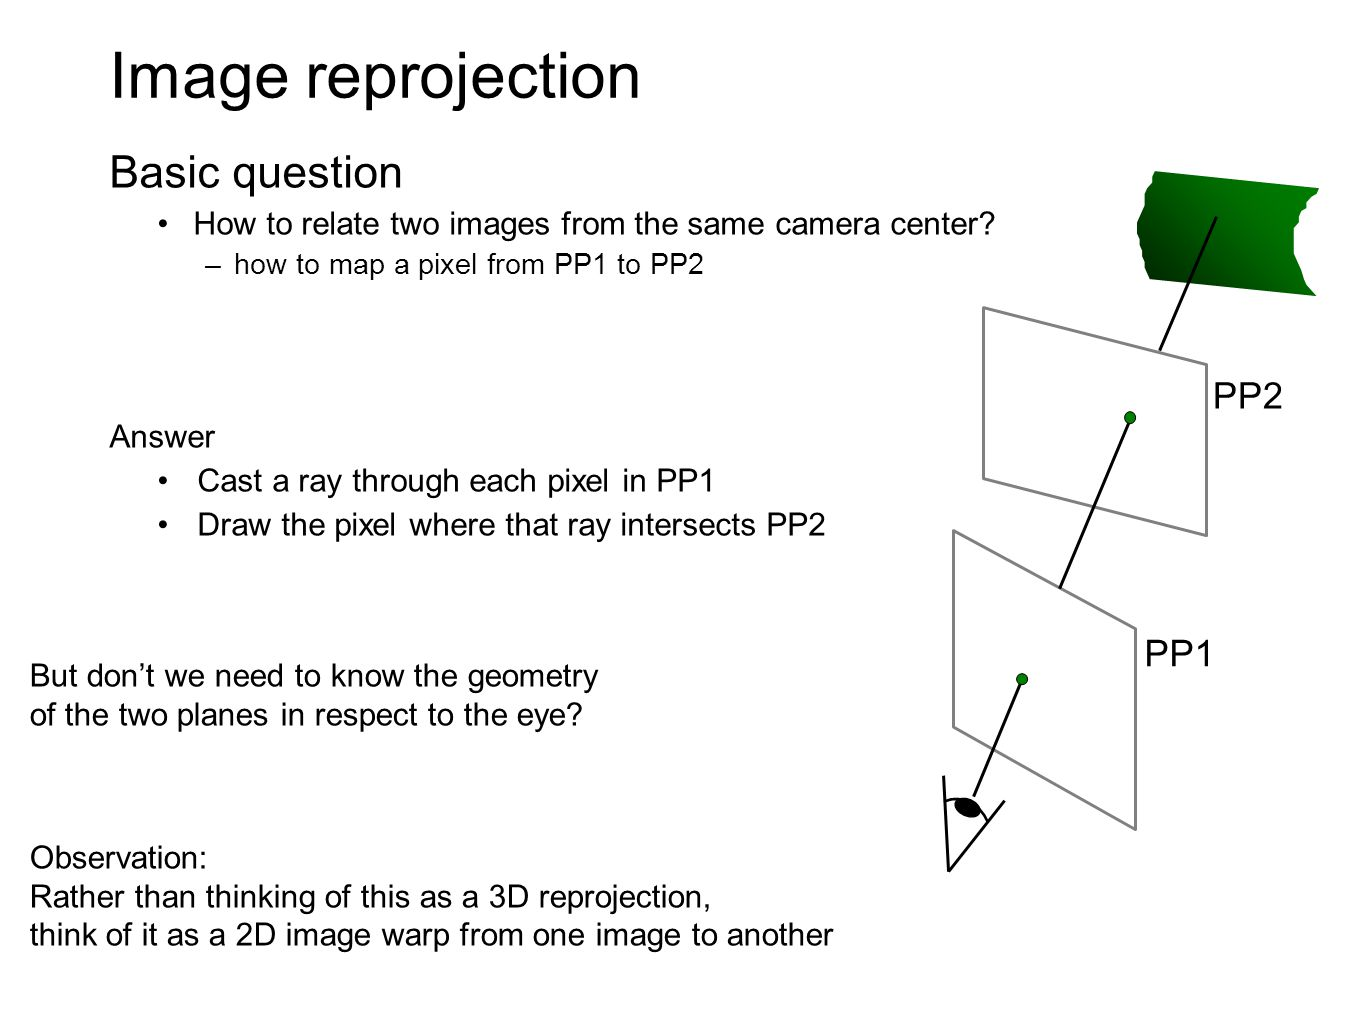 Image reprojection Basic question PP2 PP1